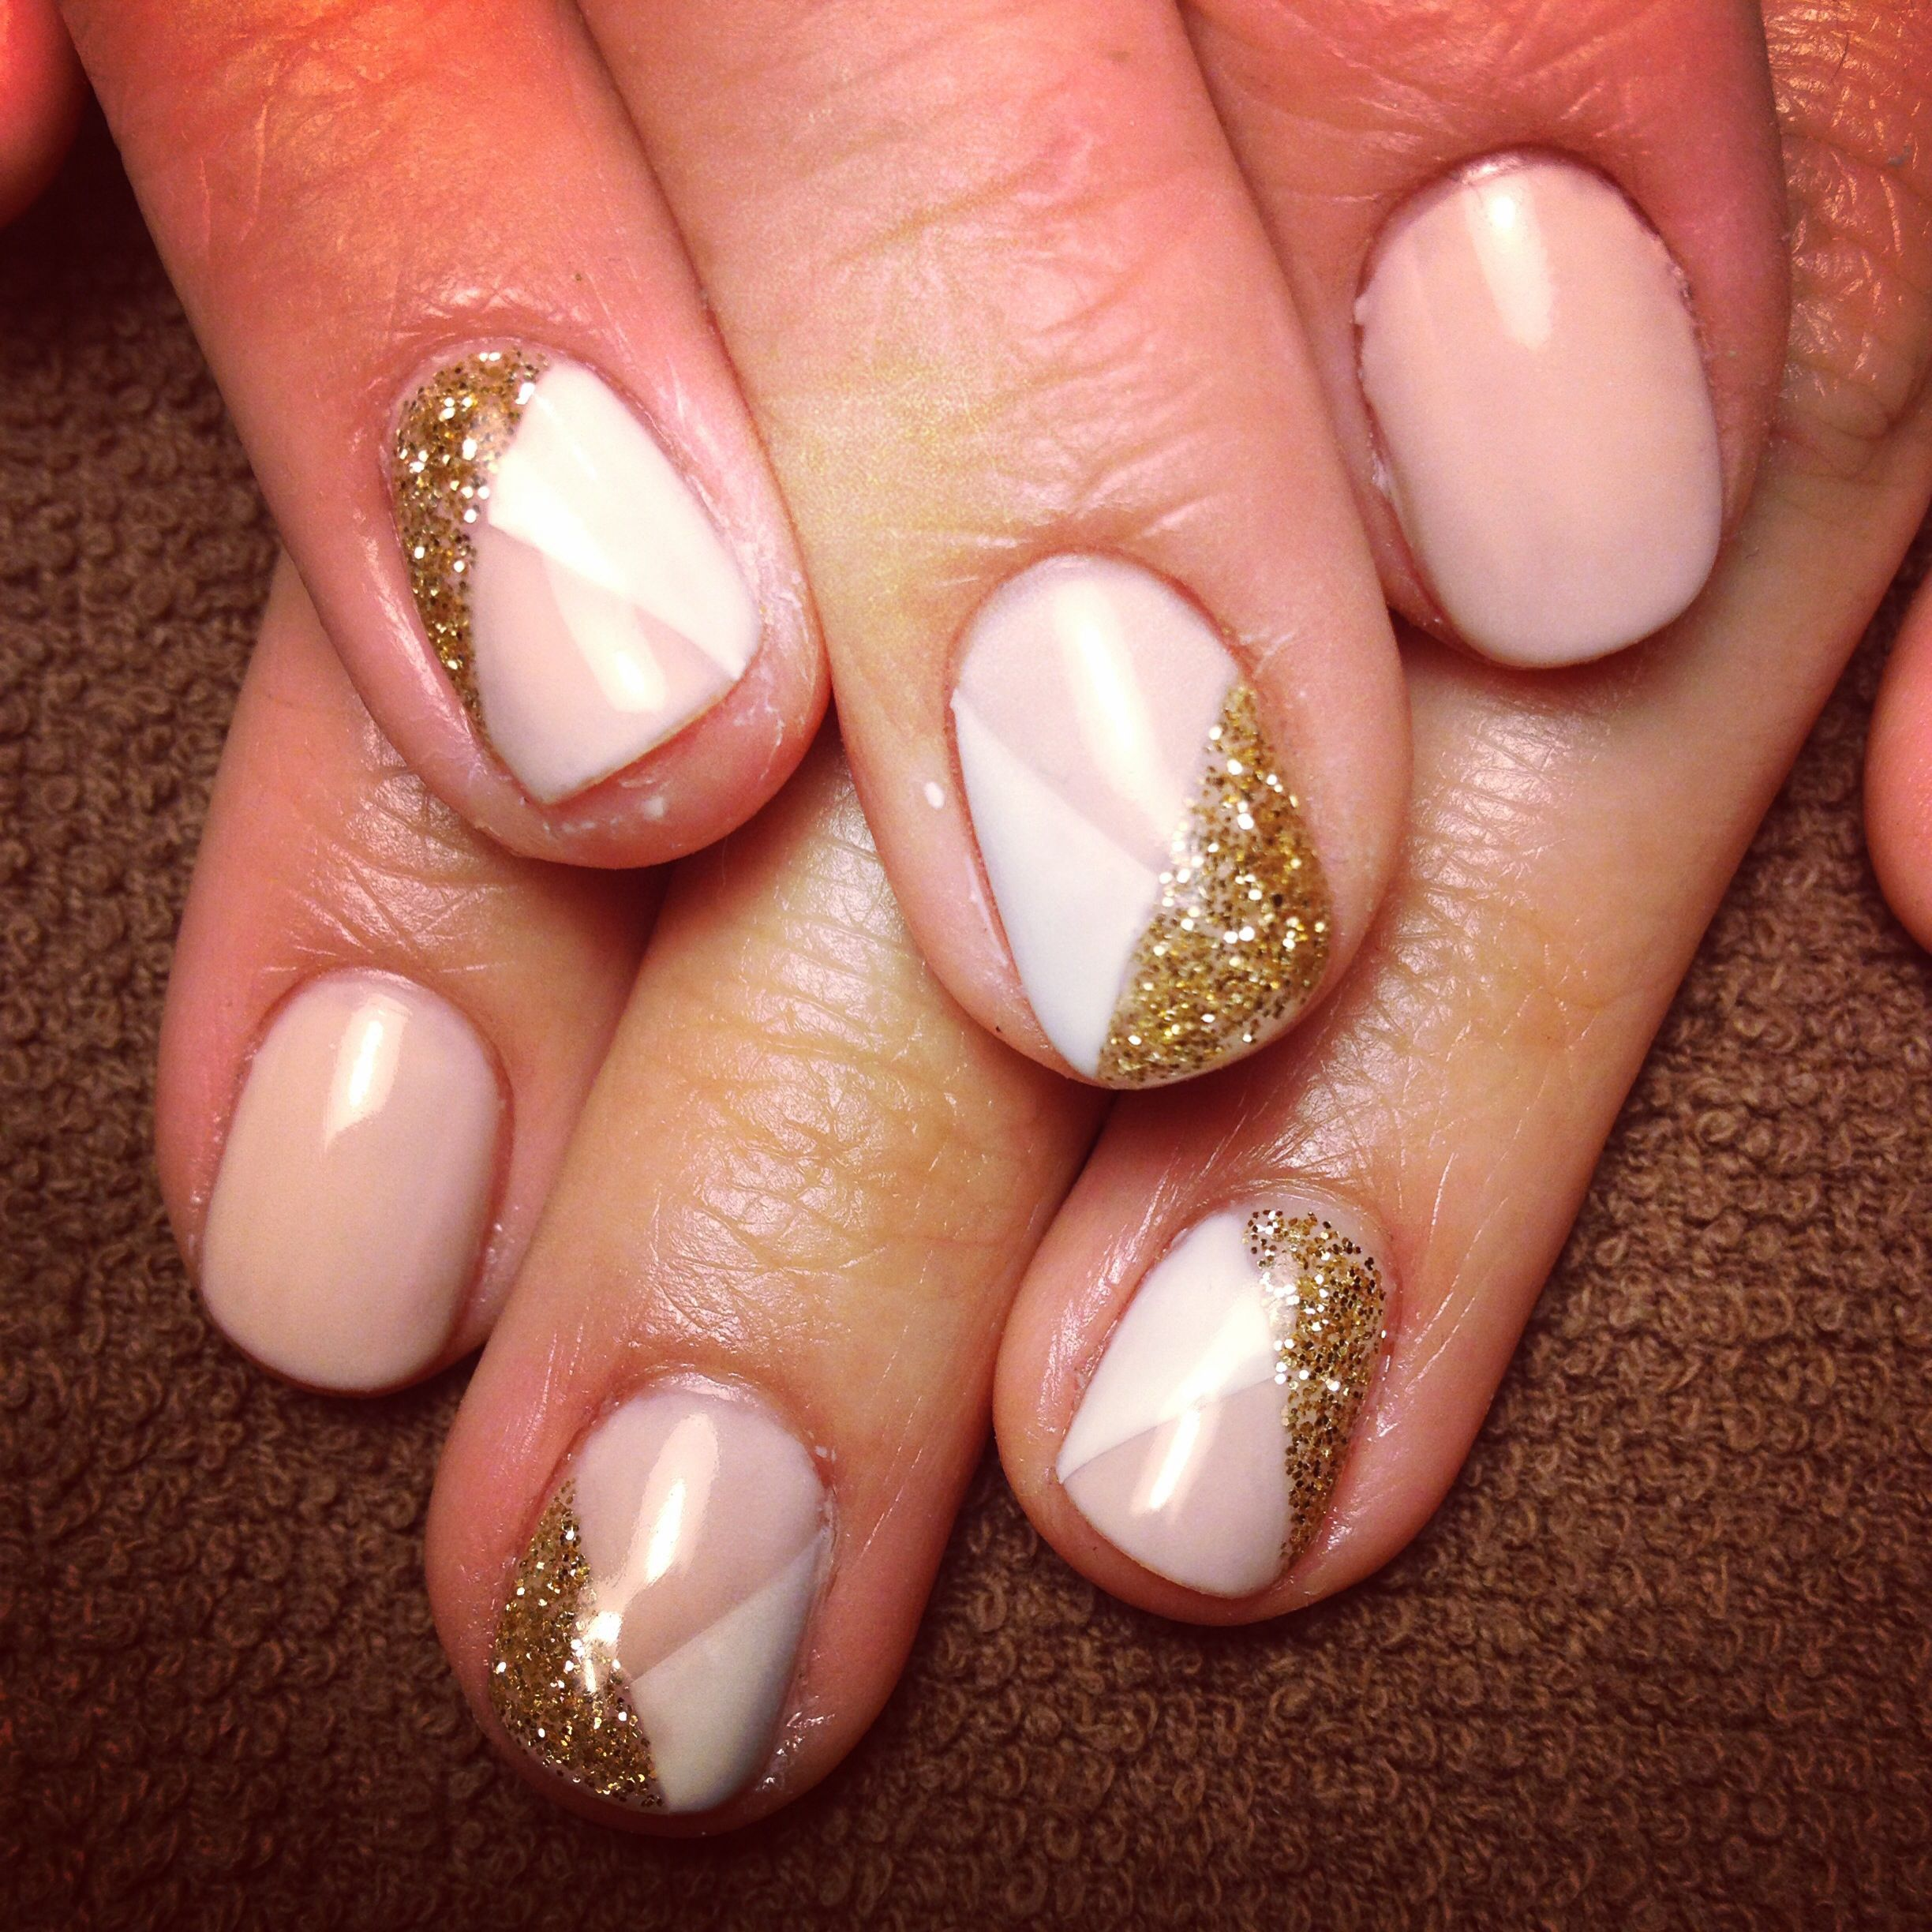 About baby boomer nail art tutorial by nded on pinterest nail art - Nail Art Gold Nude White Accent Glitter Nails Geometric Gel Polish Check Me Out At